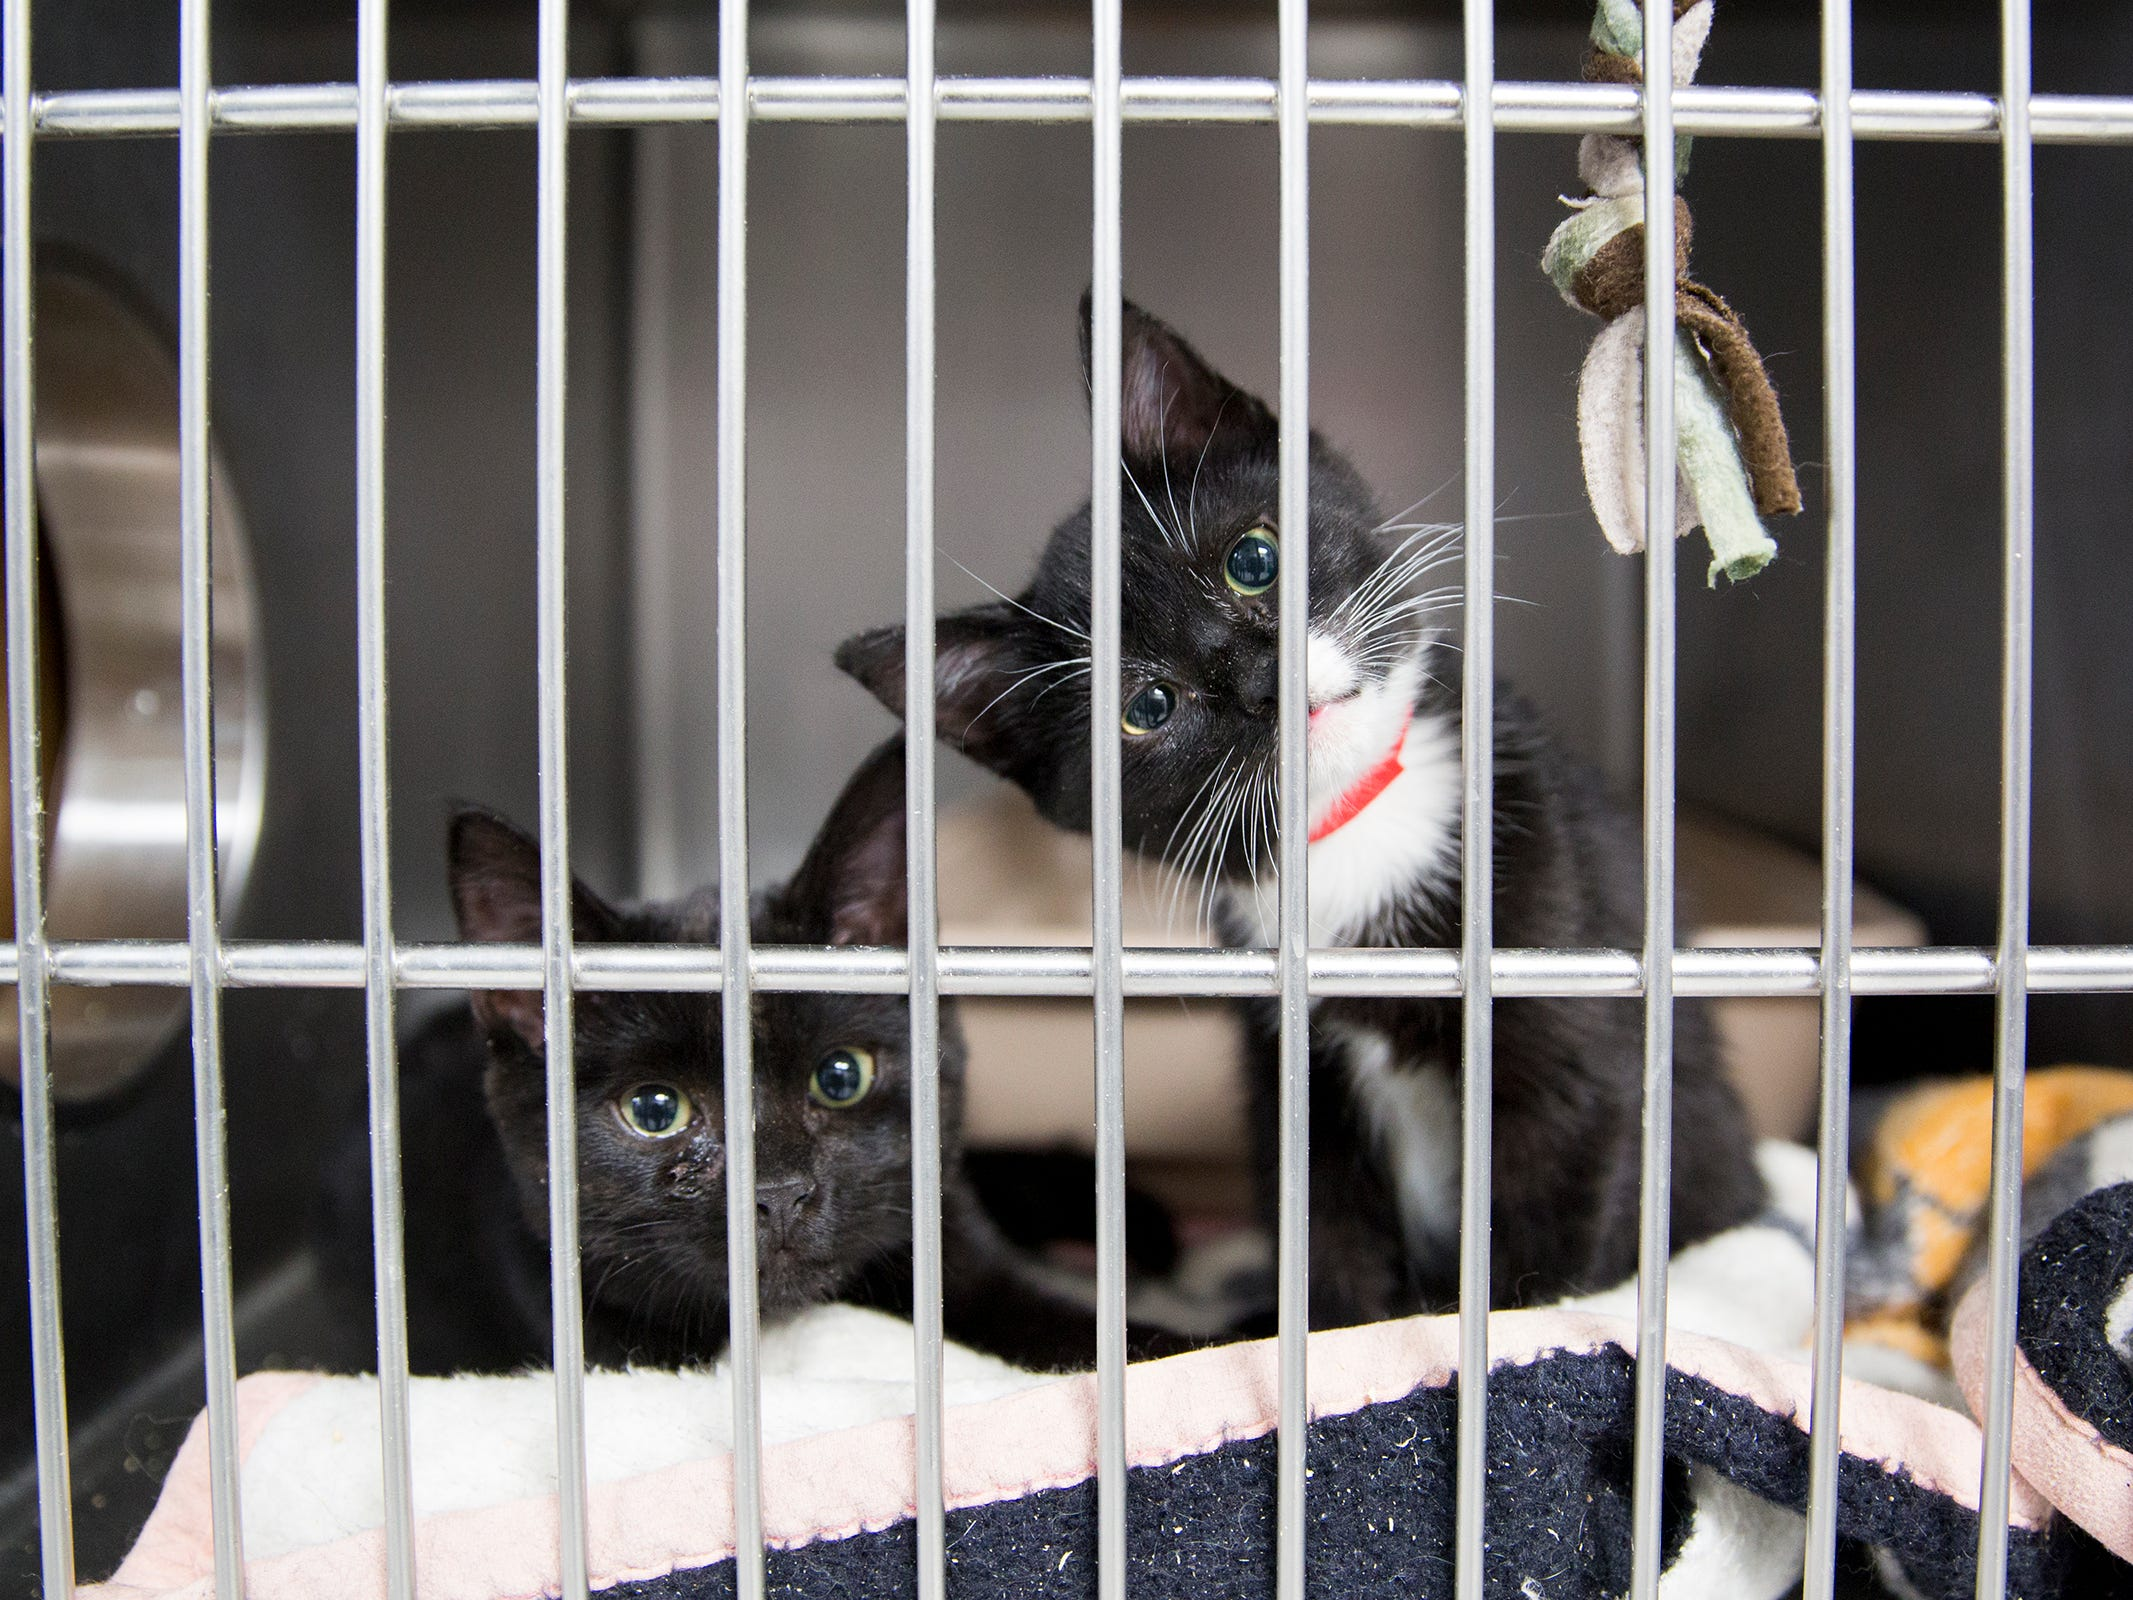 Cat siblings peep out of their cage at the Willamette Humane Society in Salem on Monday, Dec. 31, 2018.